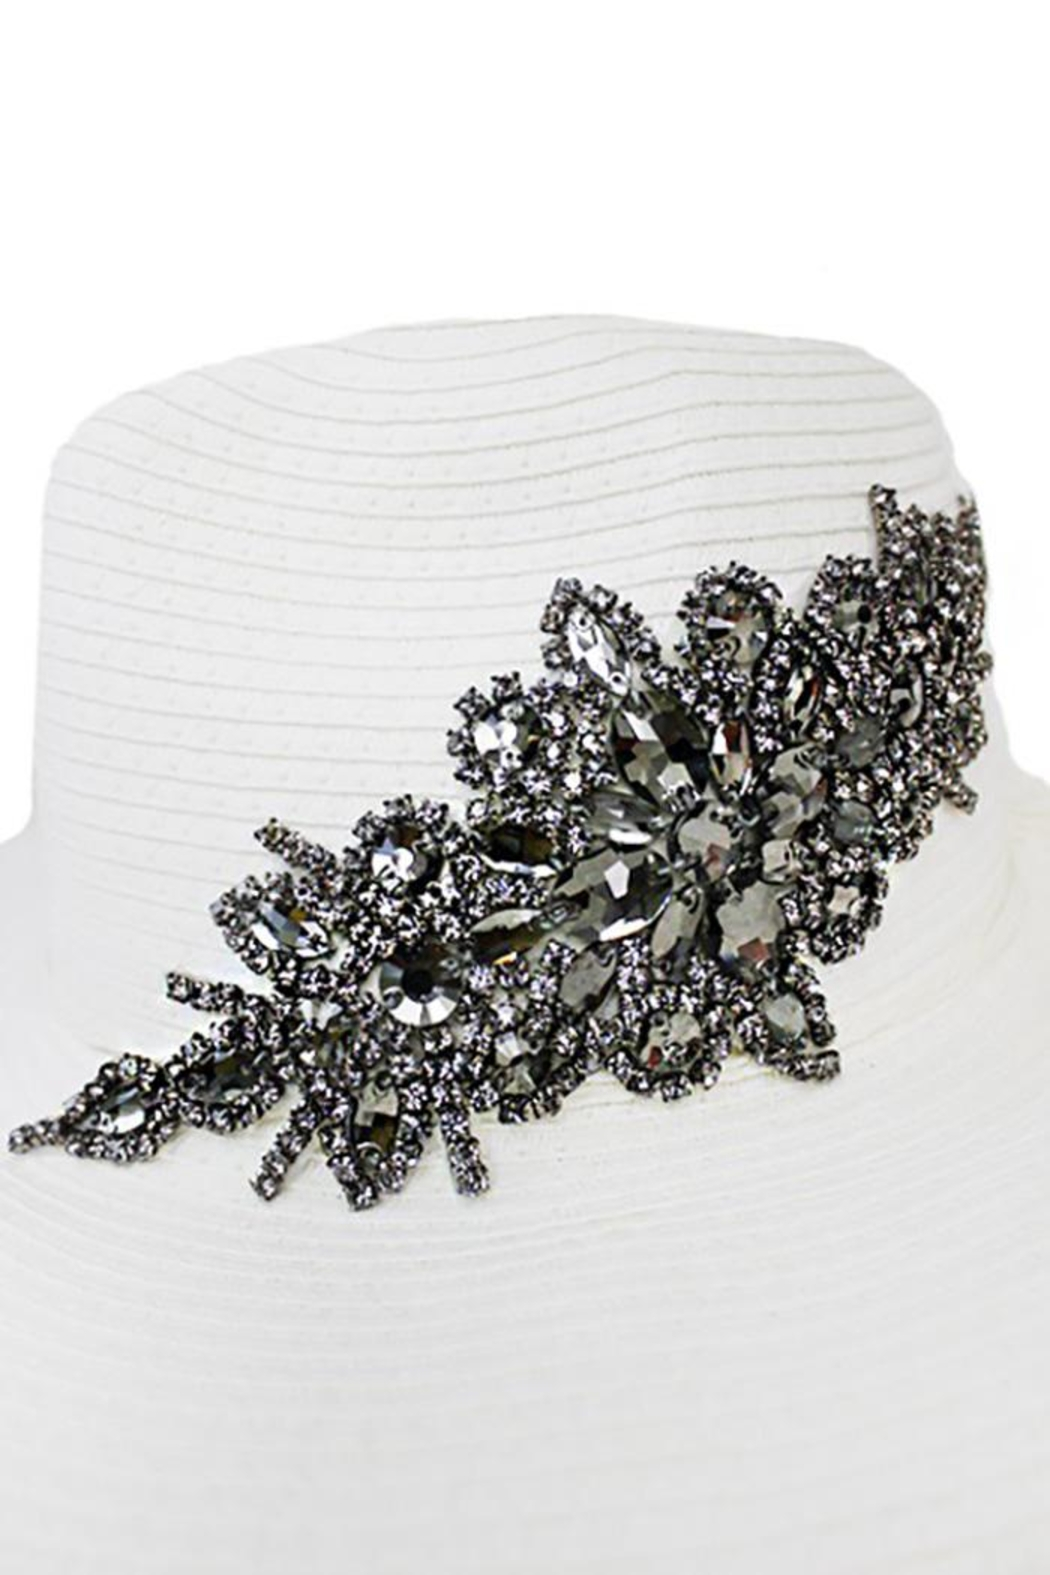 Cap Zone Crystal Sparkle Floral Panama Hat - Front Full Image